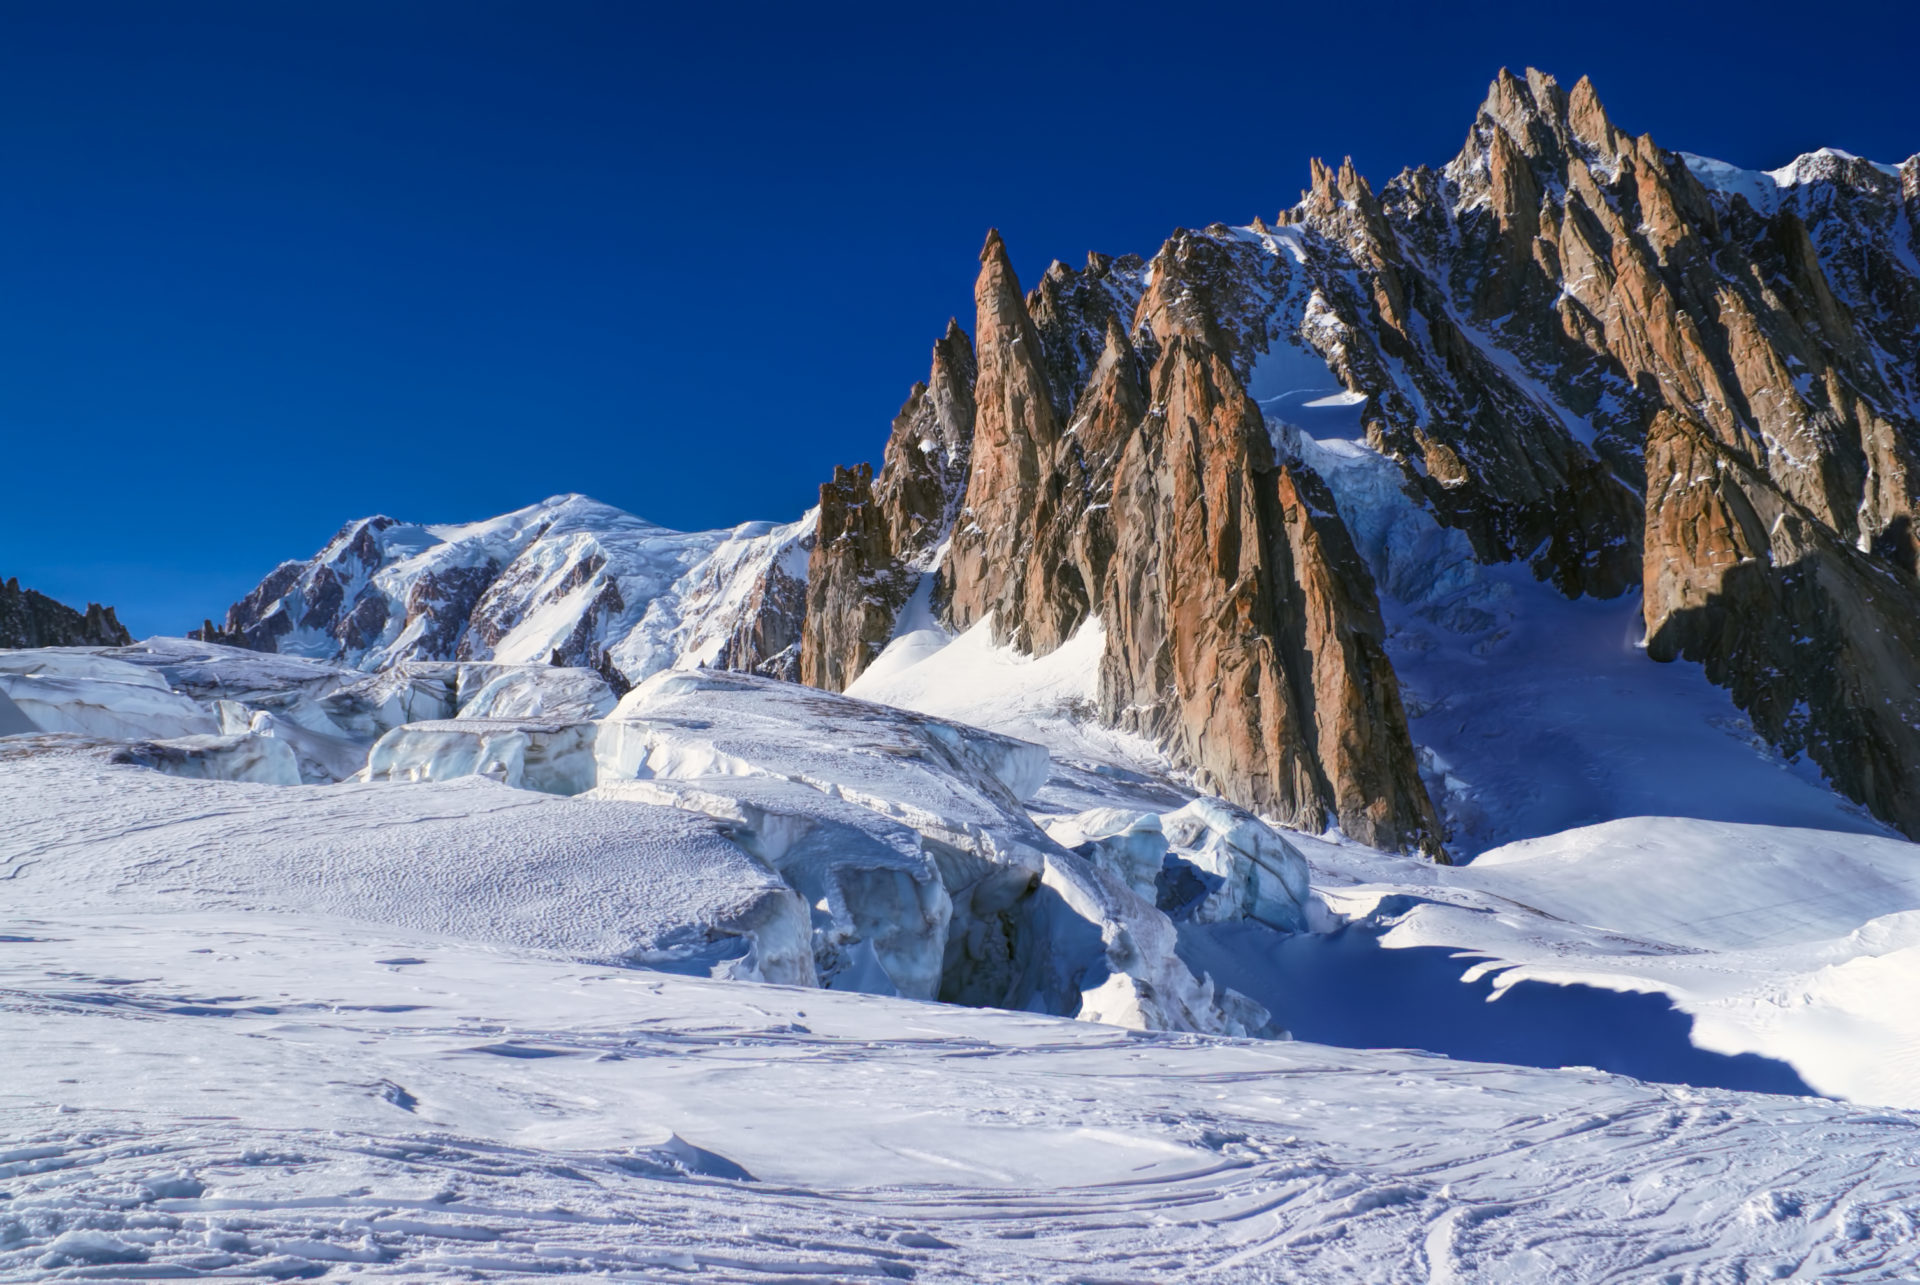 View on La Vallee Blanche